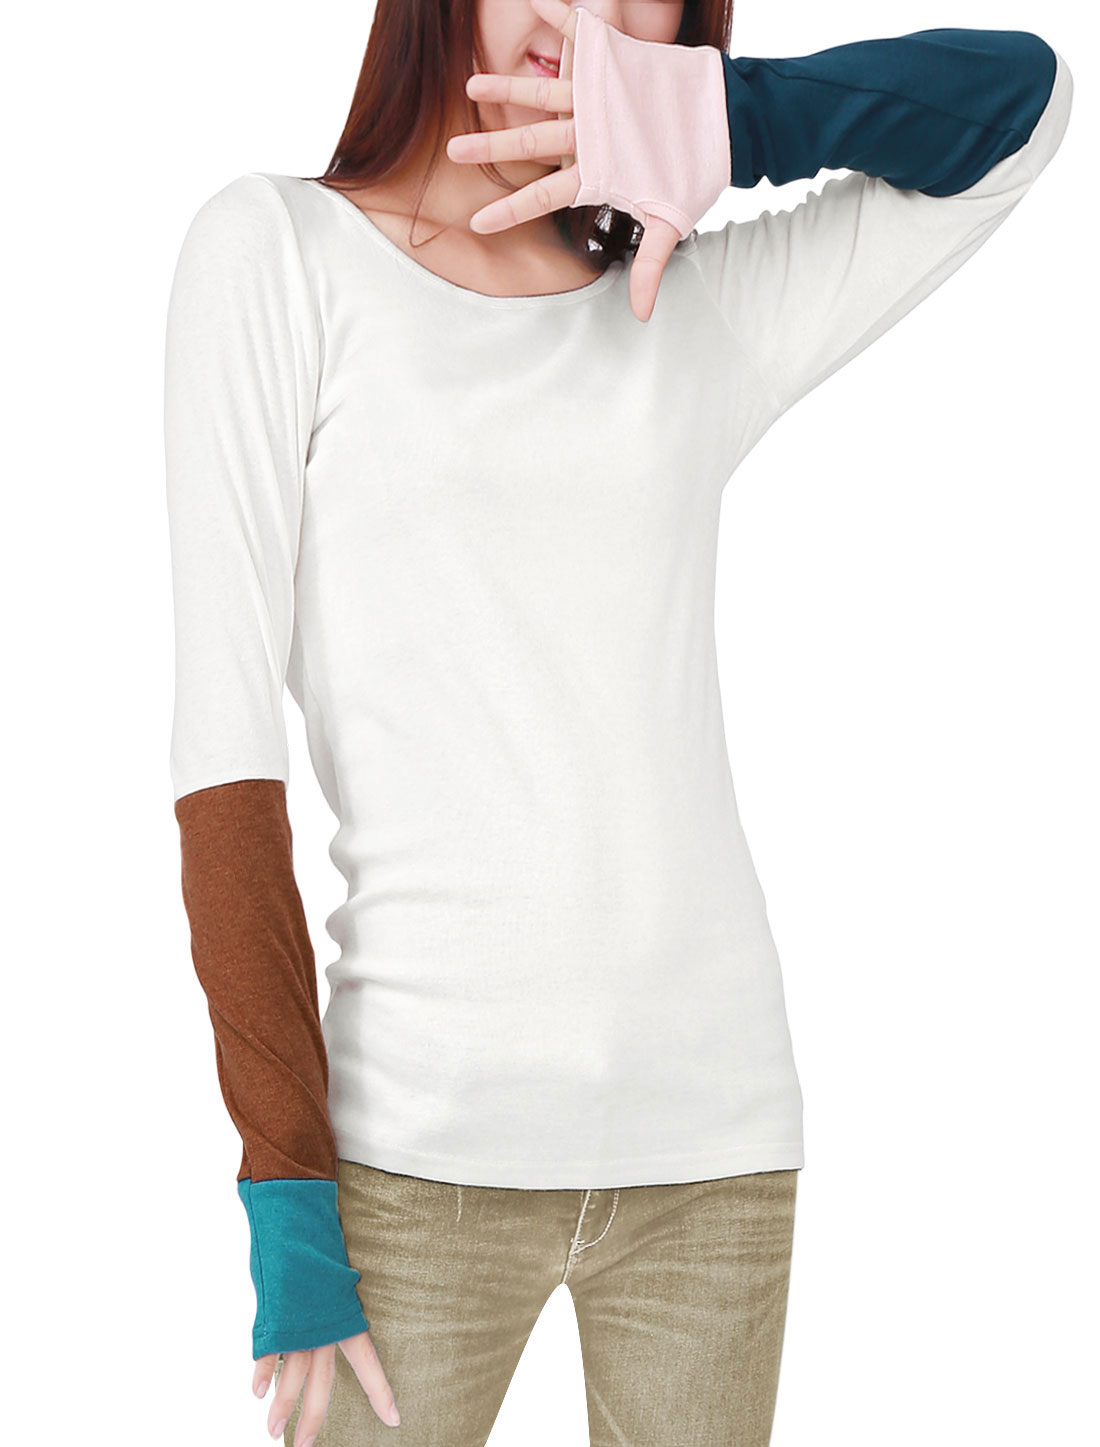 Women Contrast Color Thumb Hole Sleeve T-Shirt White XL